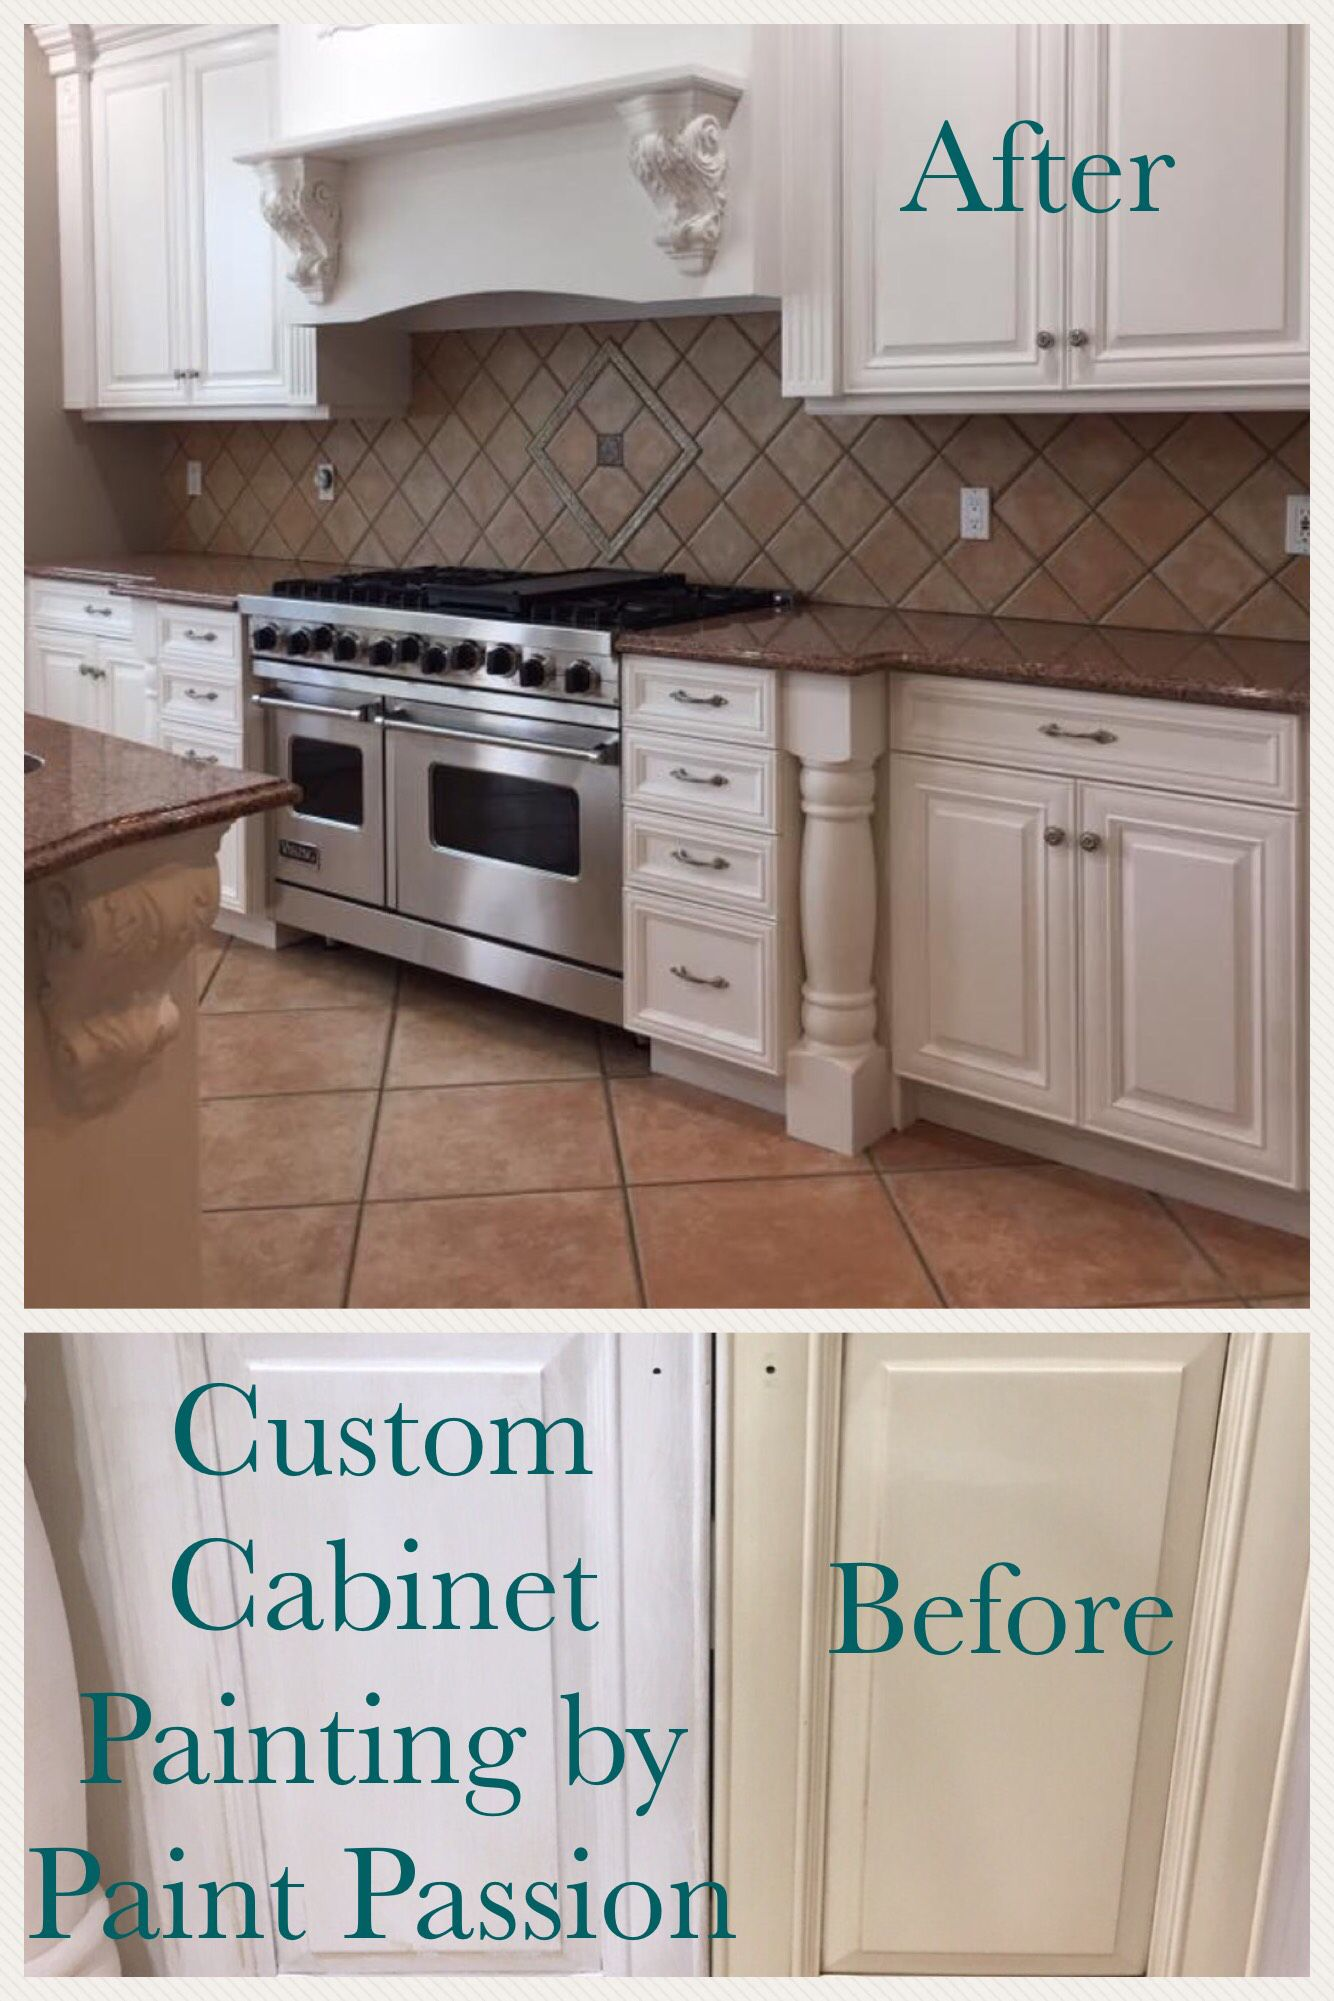 Pin By Paint Passion On Custom Painted Kitchen Cabinets Kitchen Cabinets Kitchen Paint Painting Kitchen Cabinets